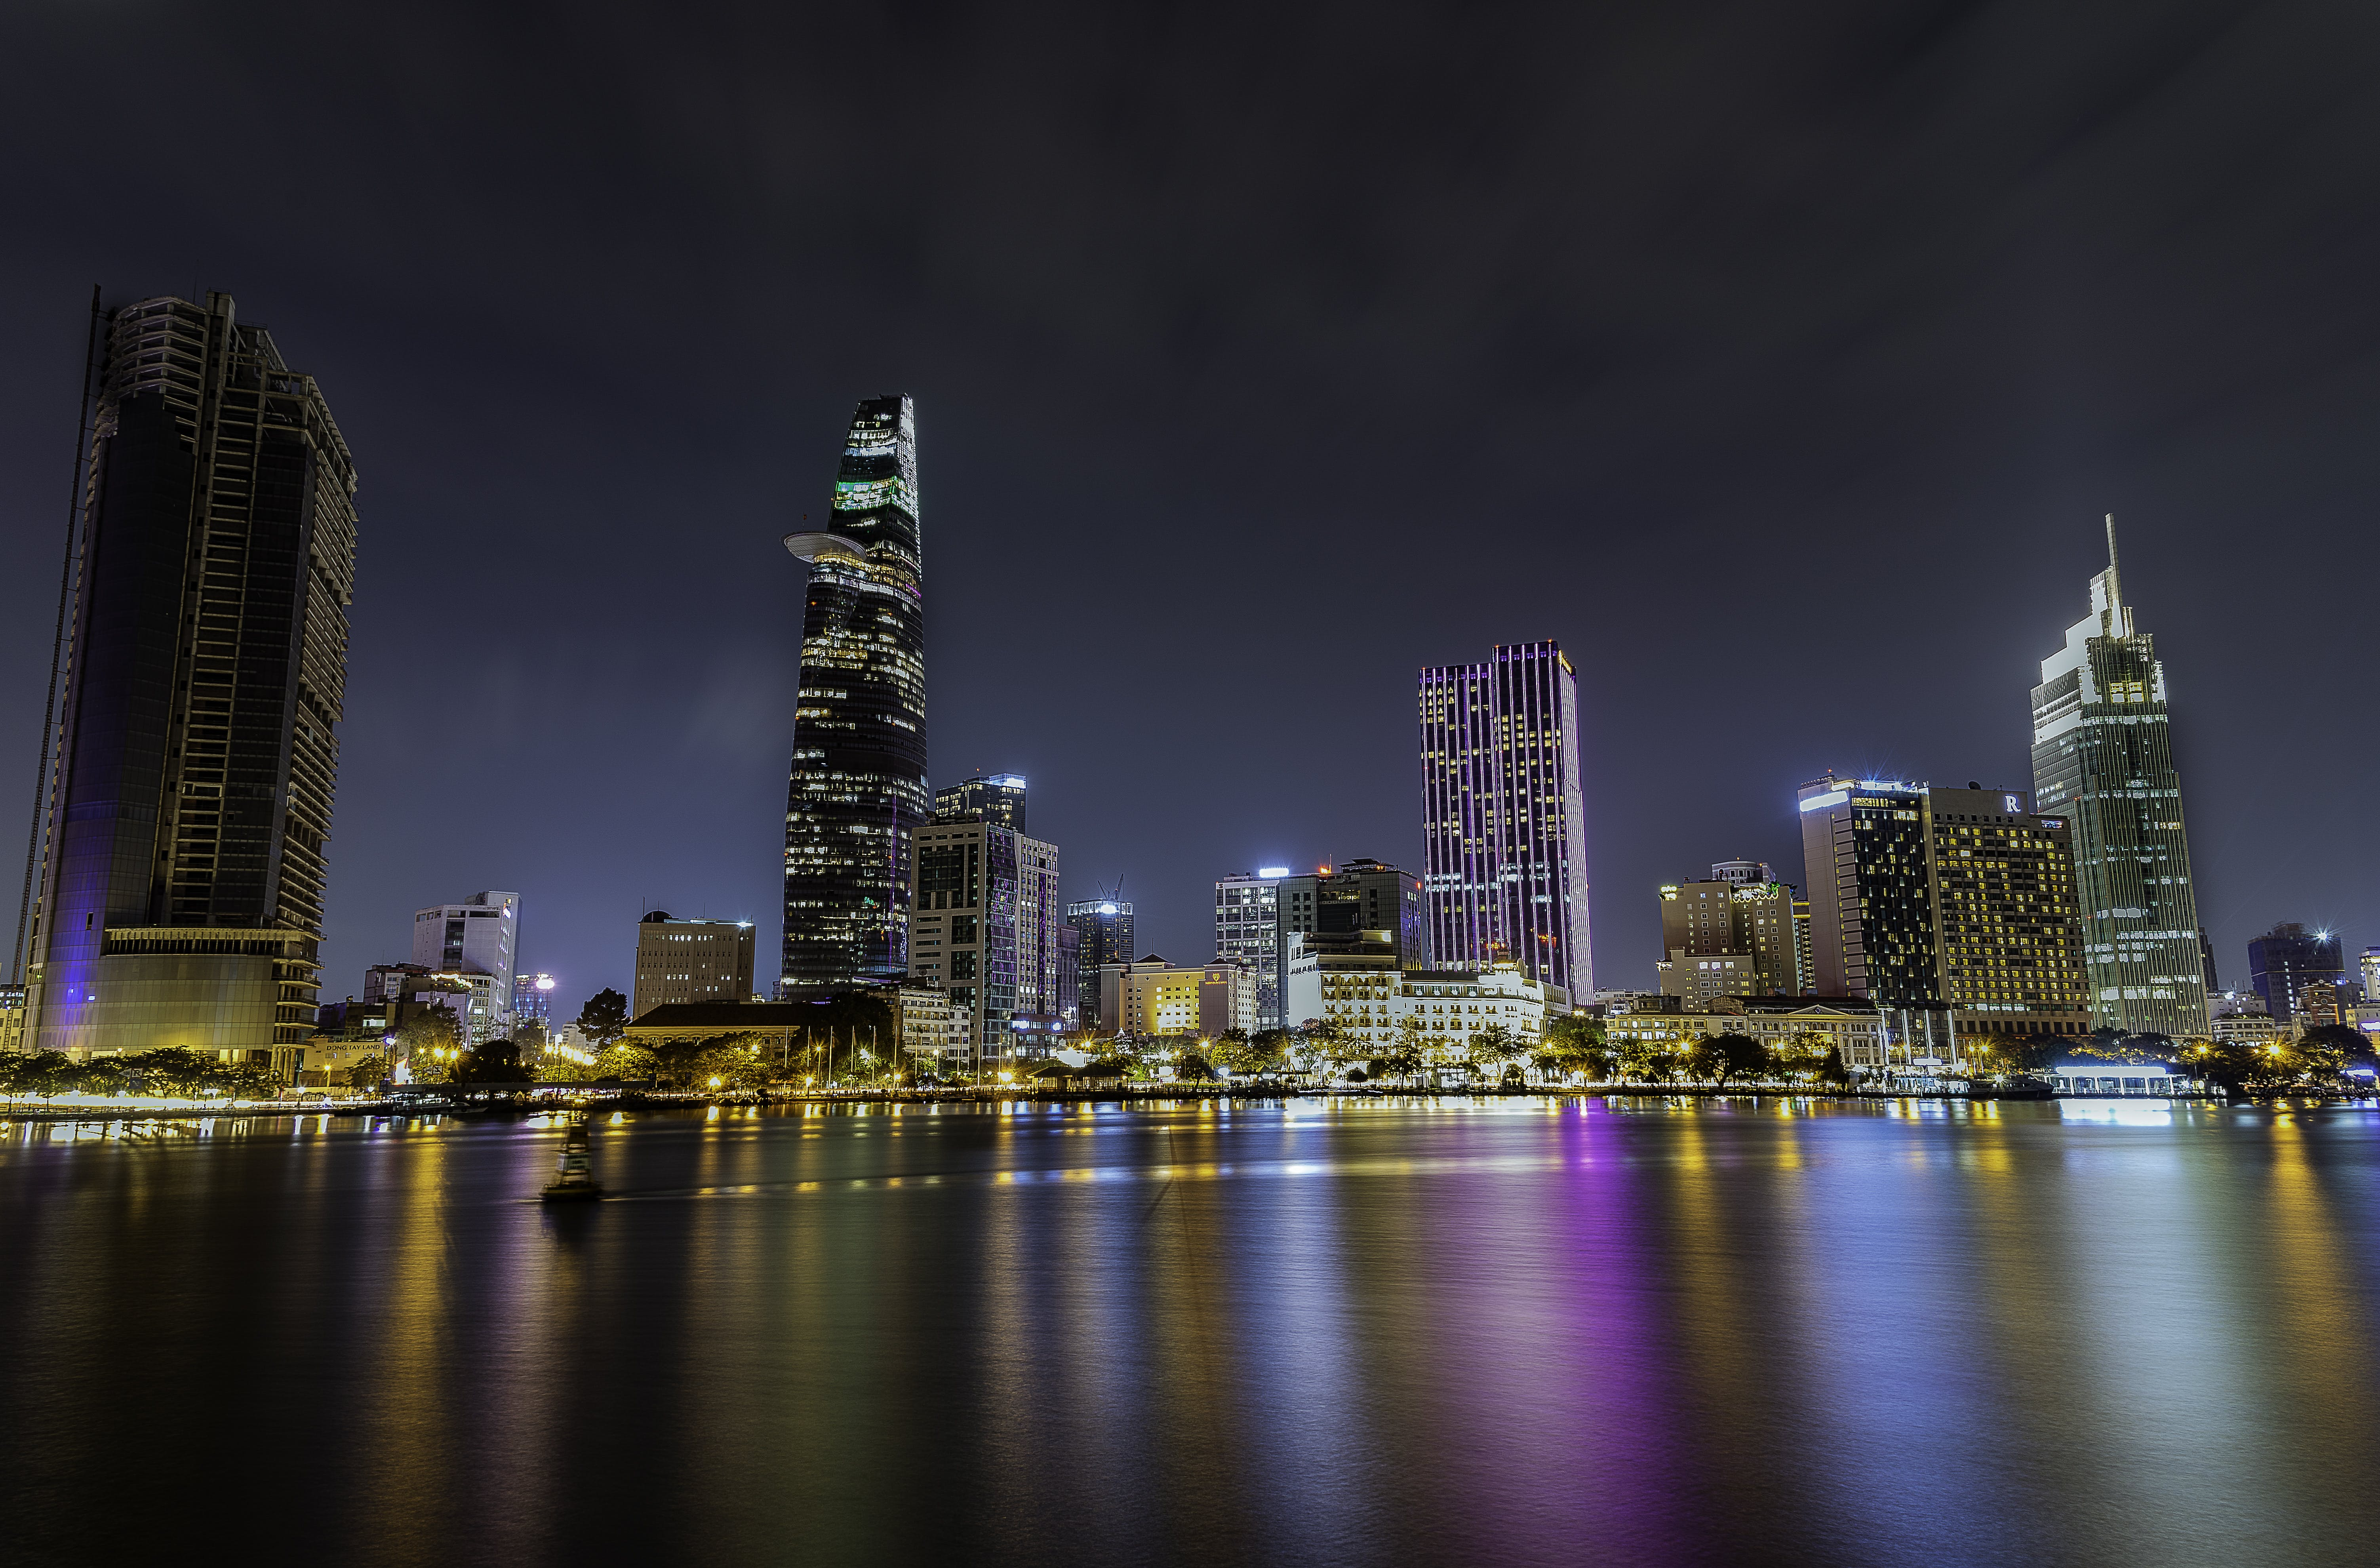 City during Nighttime Photography